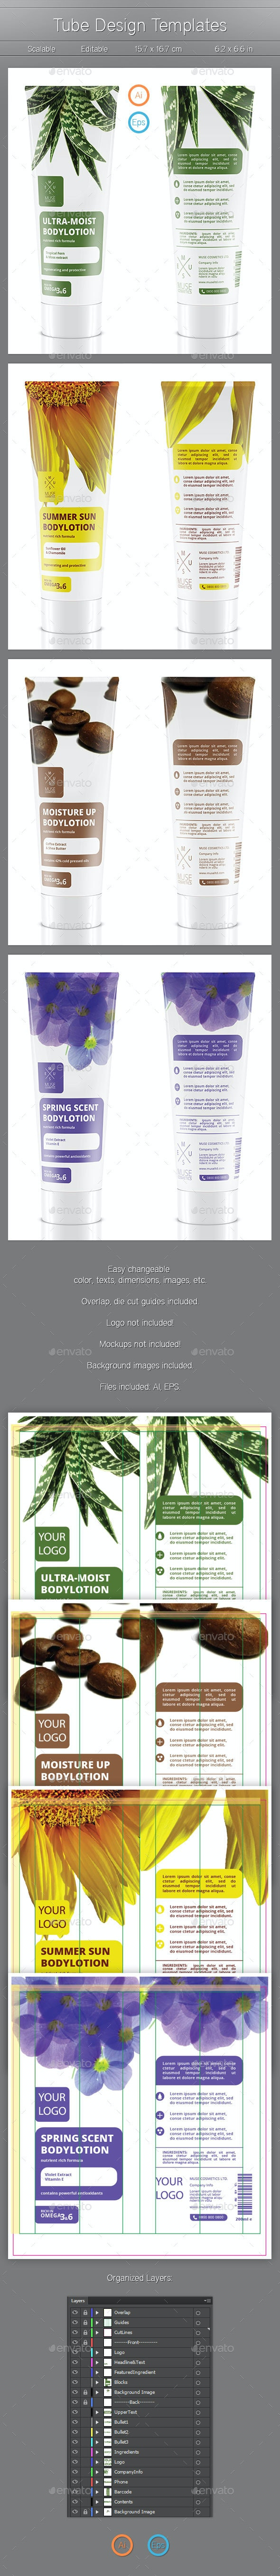 Tube Design Templates - Packaging Print Templates